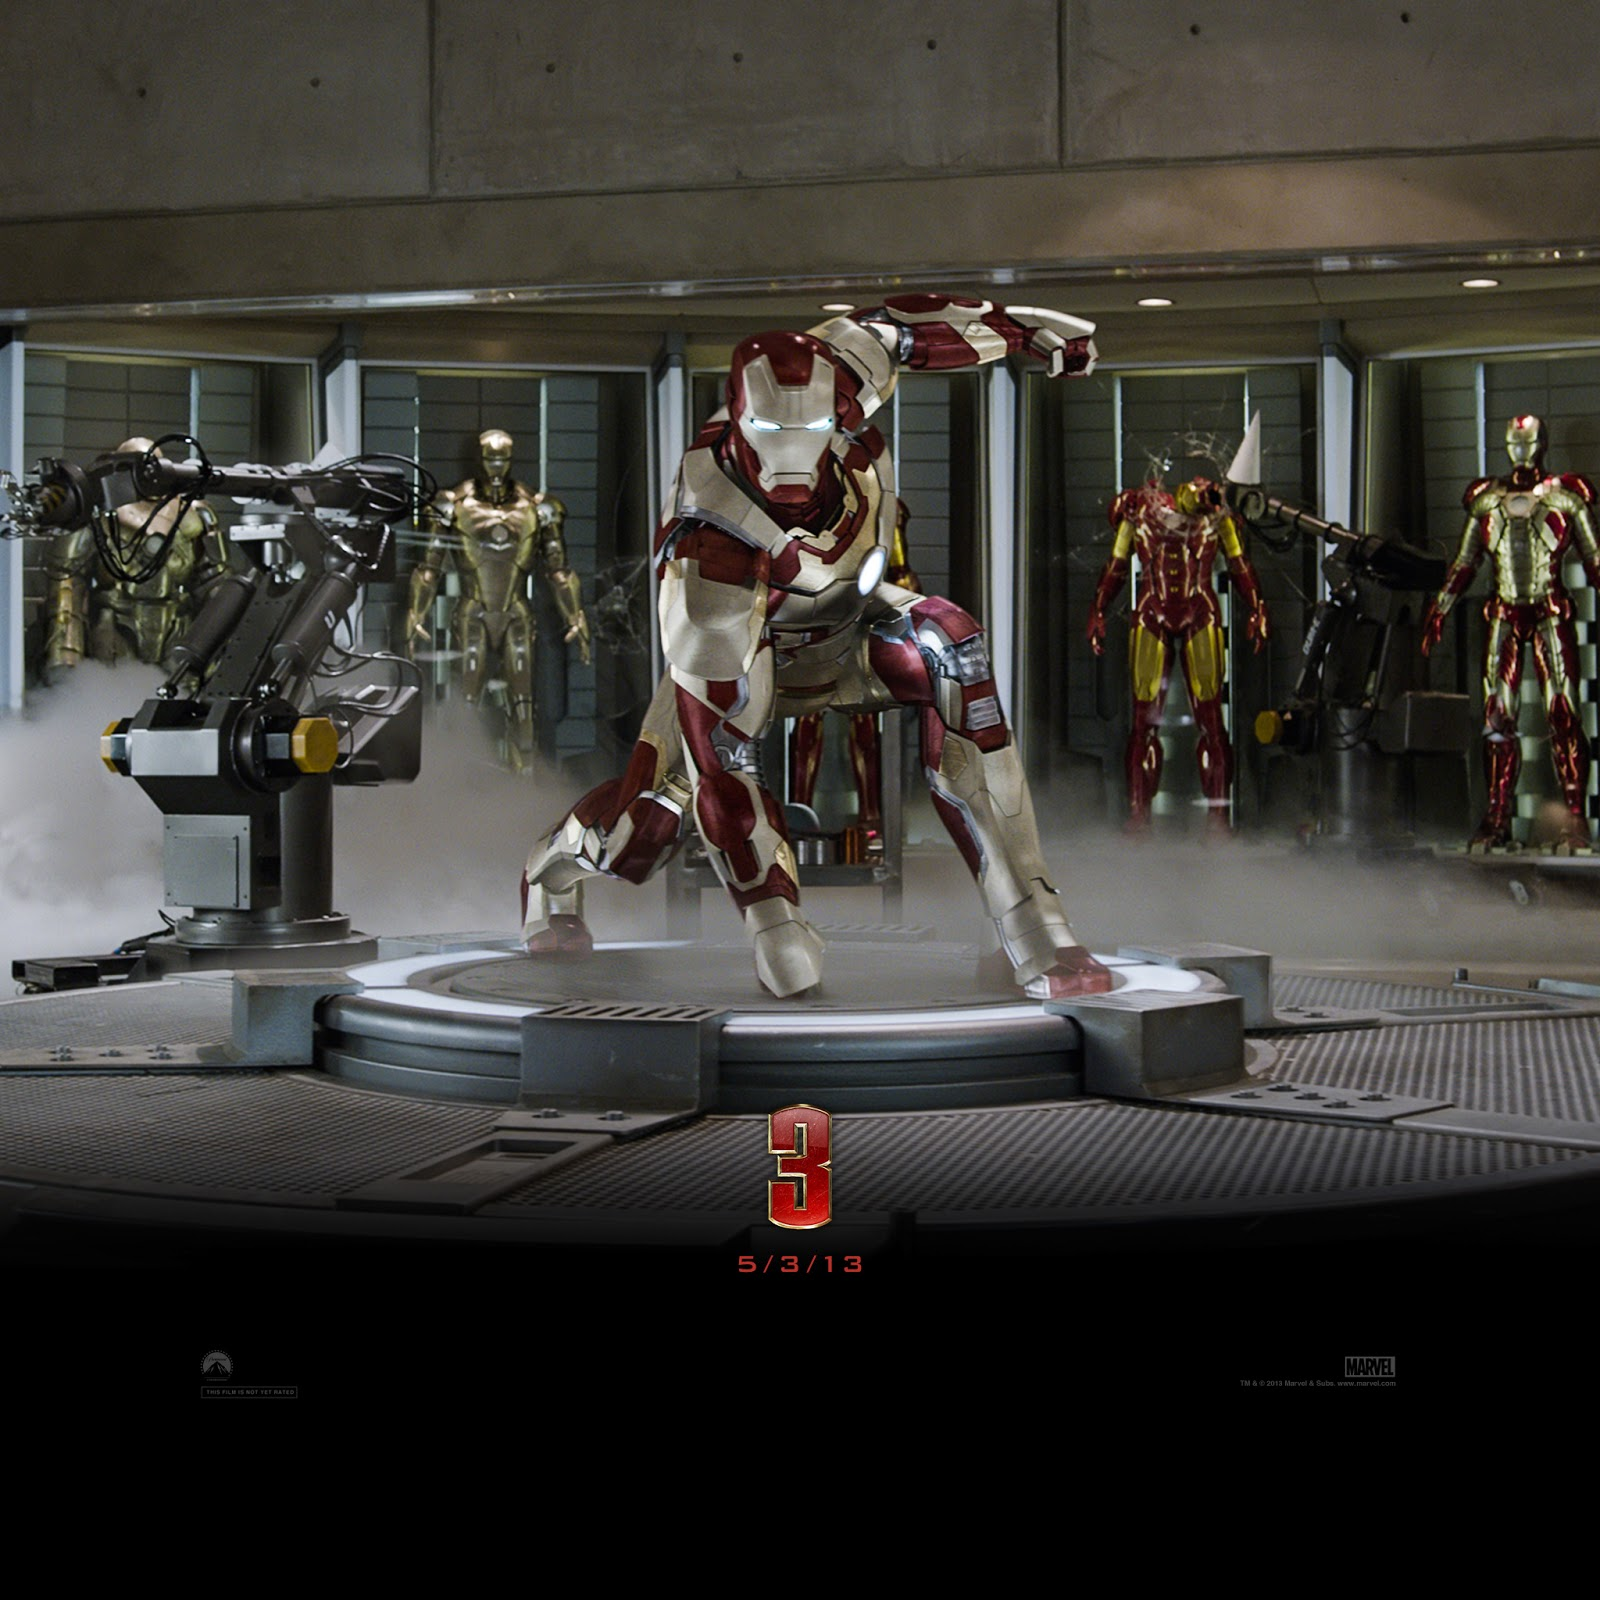 Tony Stark Hd Wallpapers Free Download Official Iron Man 3 Movie Wallpapers